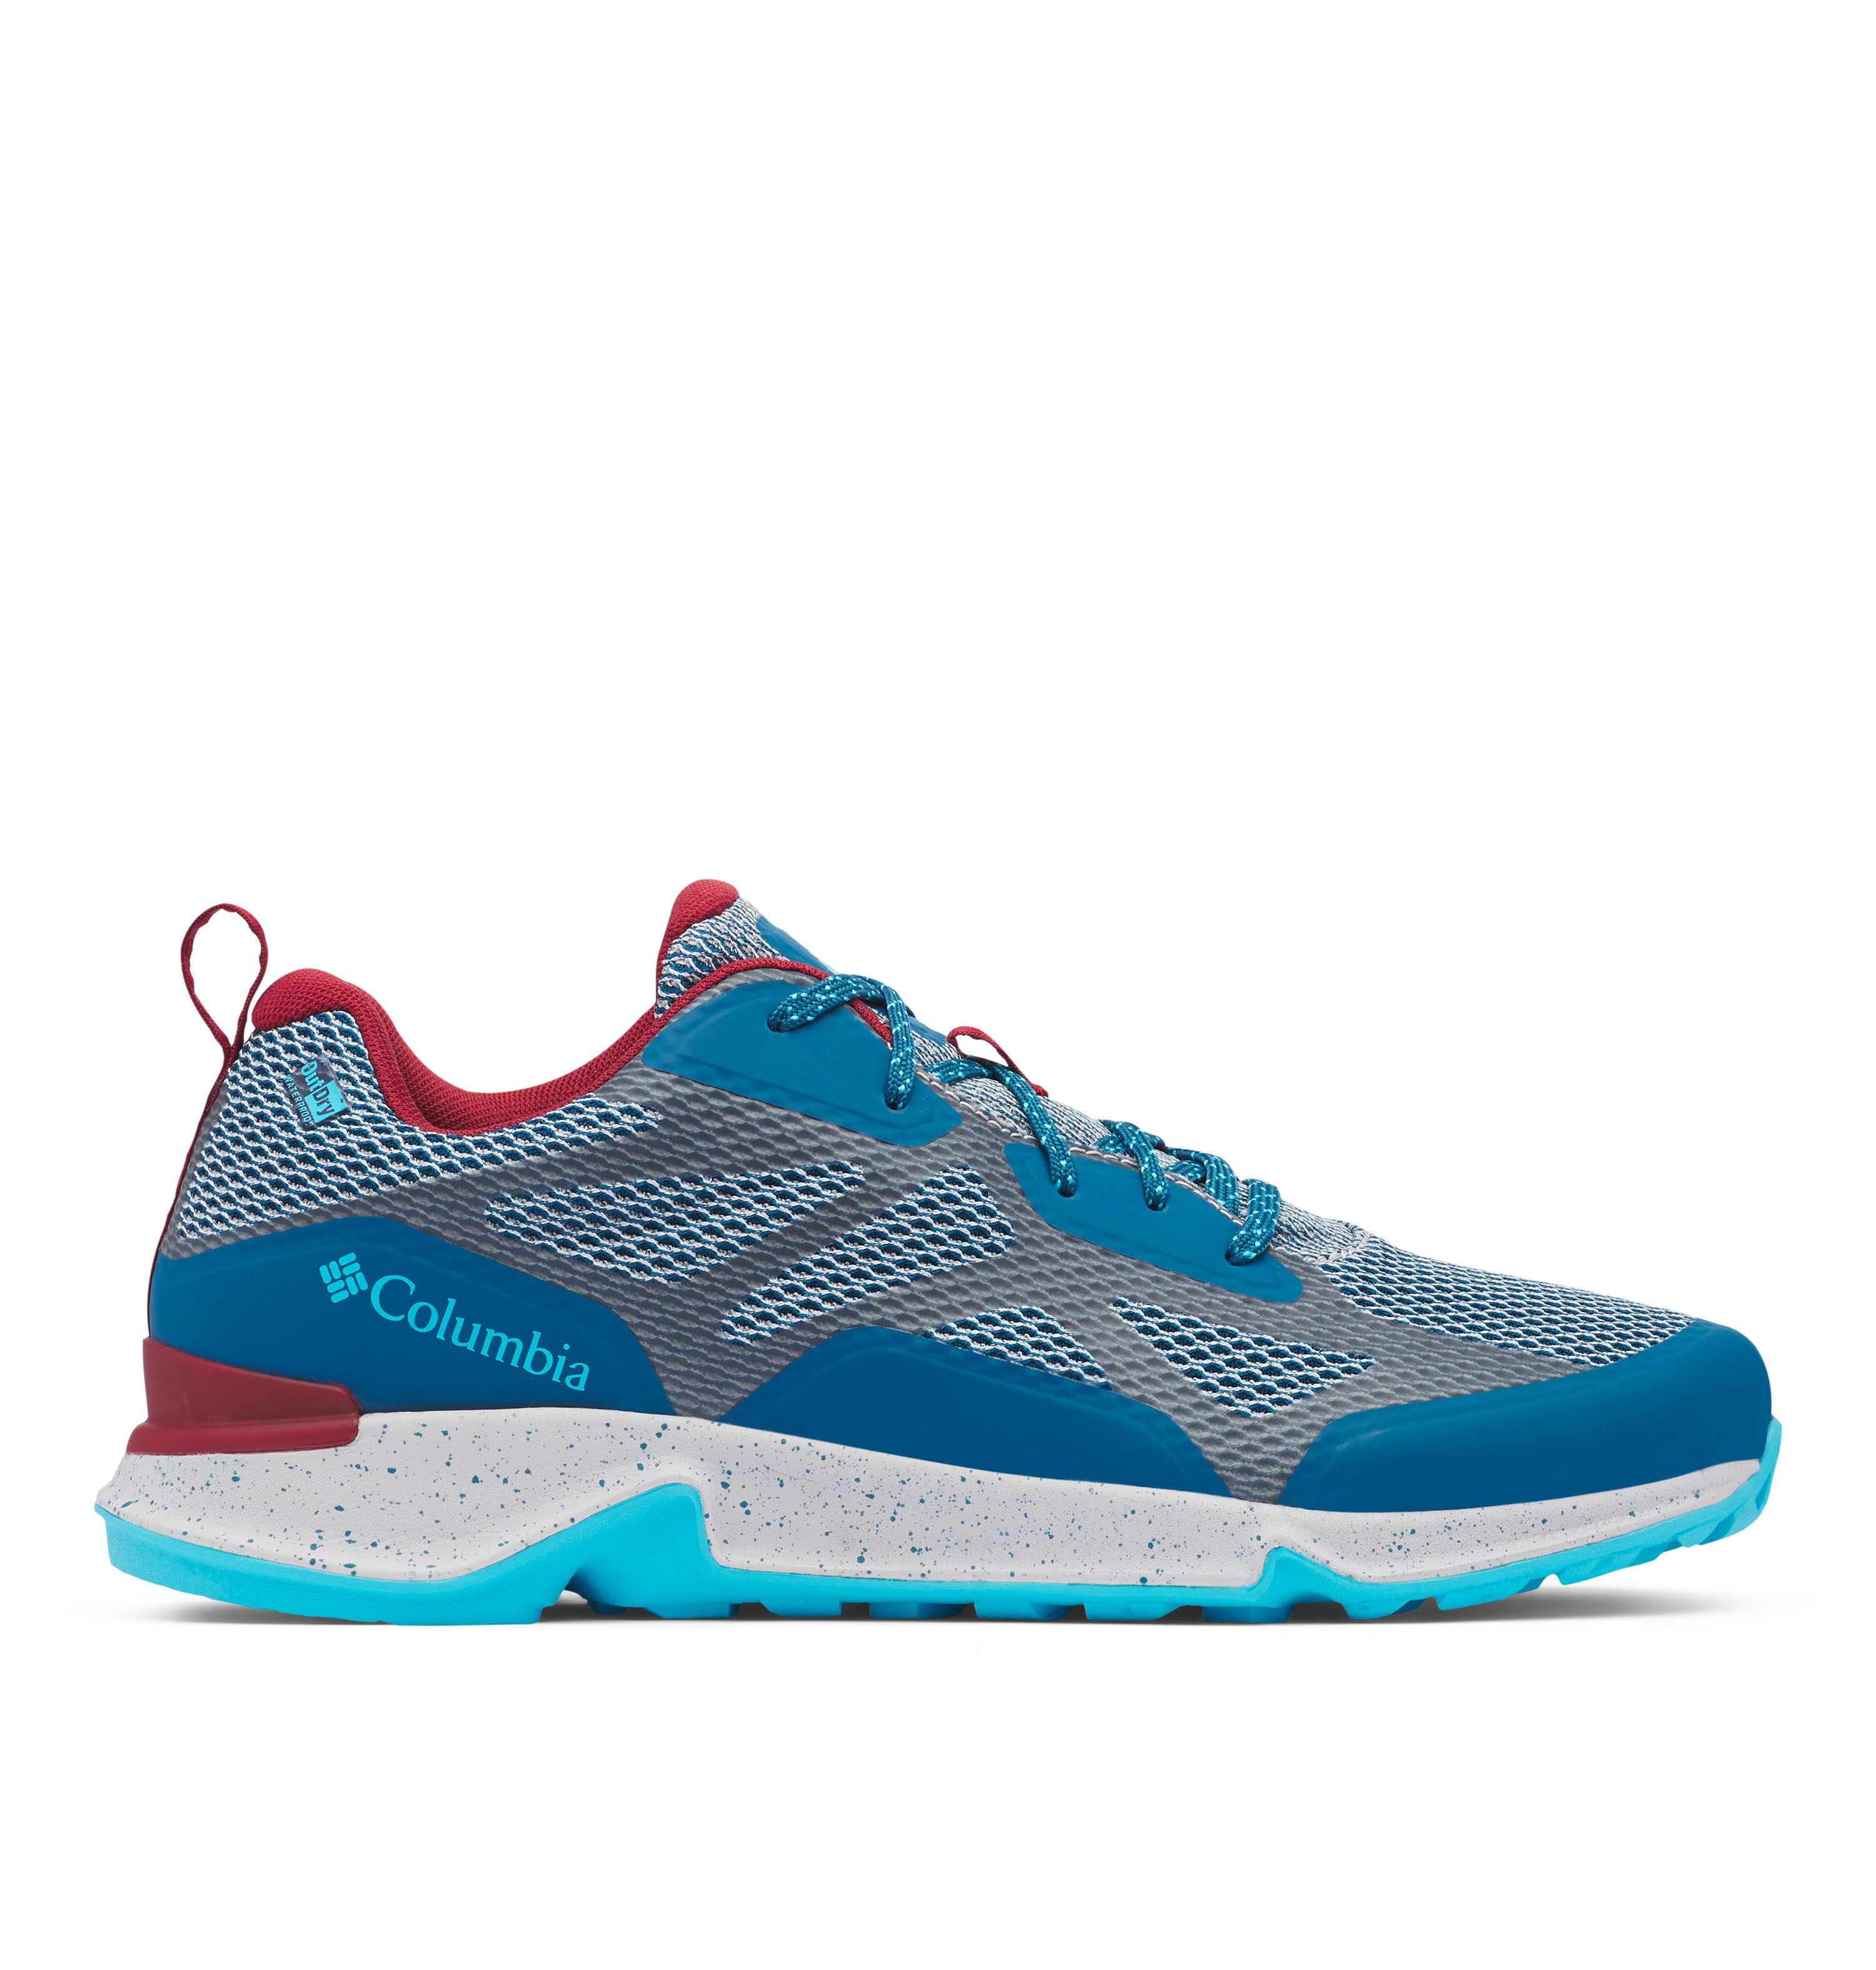 Comprar Columbia Vitesse Outdry blue / OutDry® / Omni-Grip shoes /